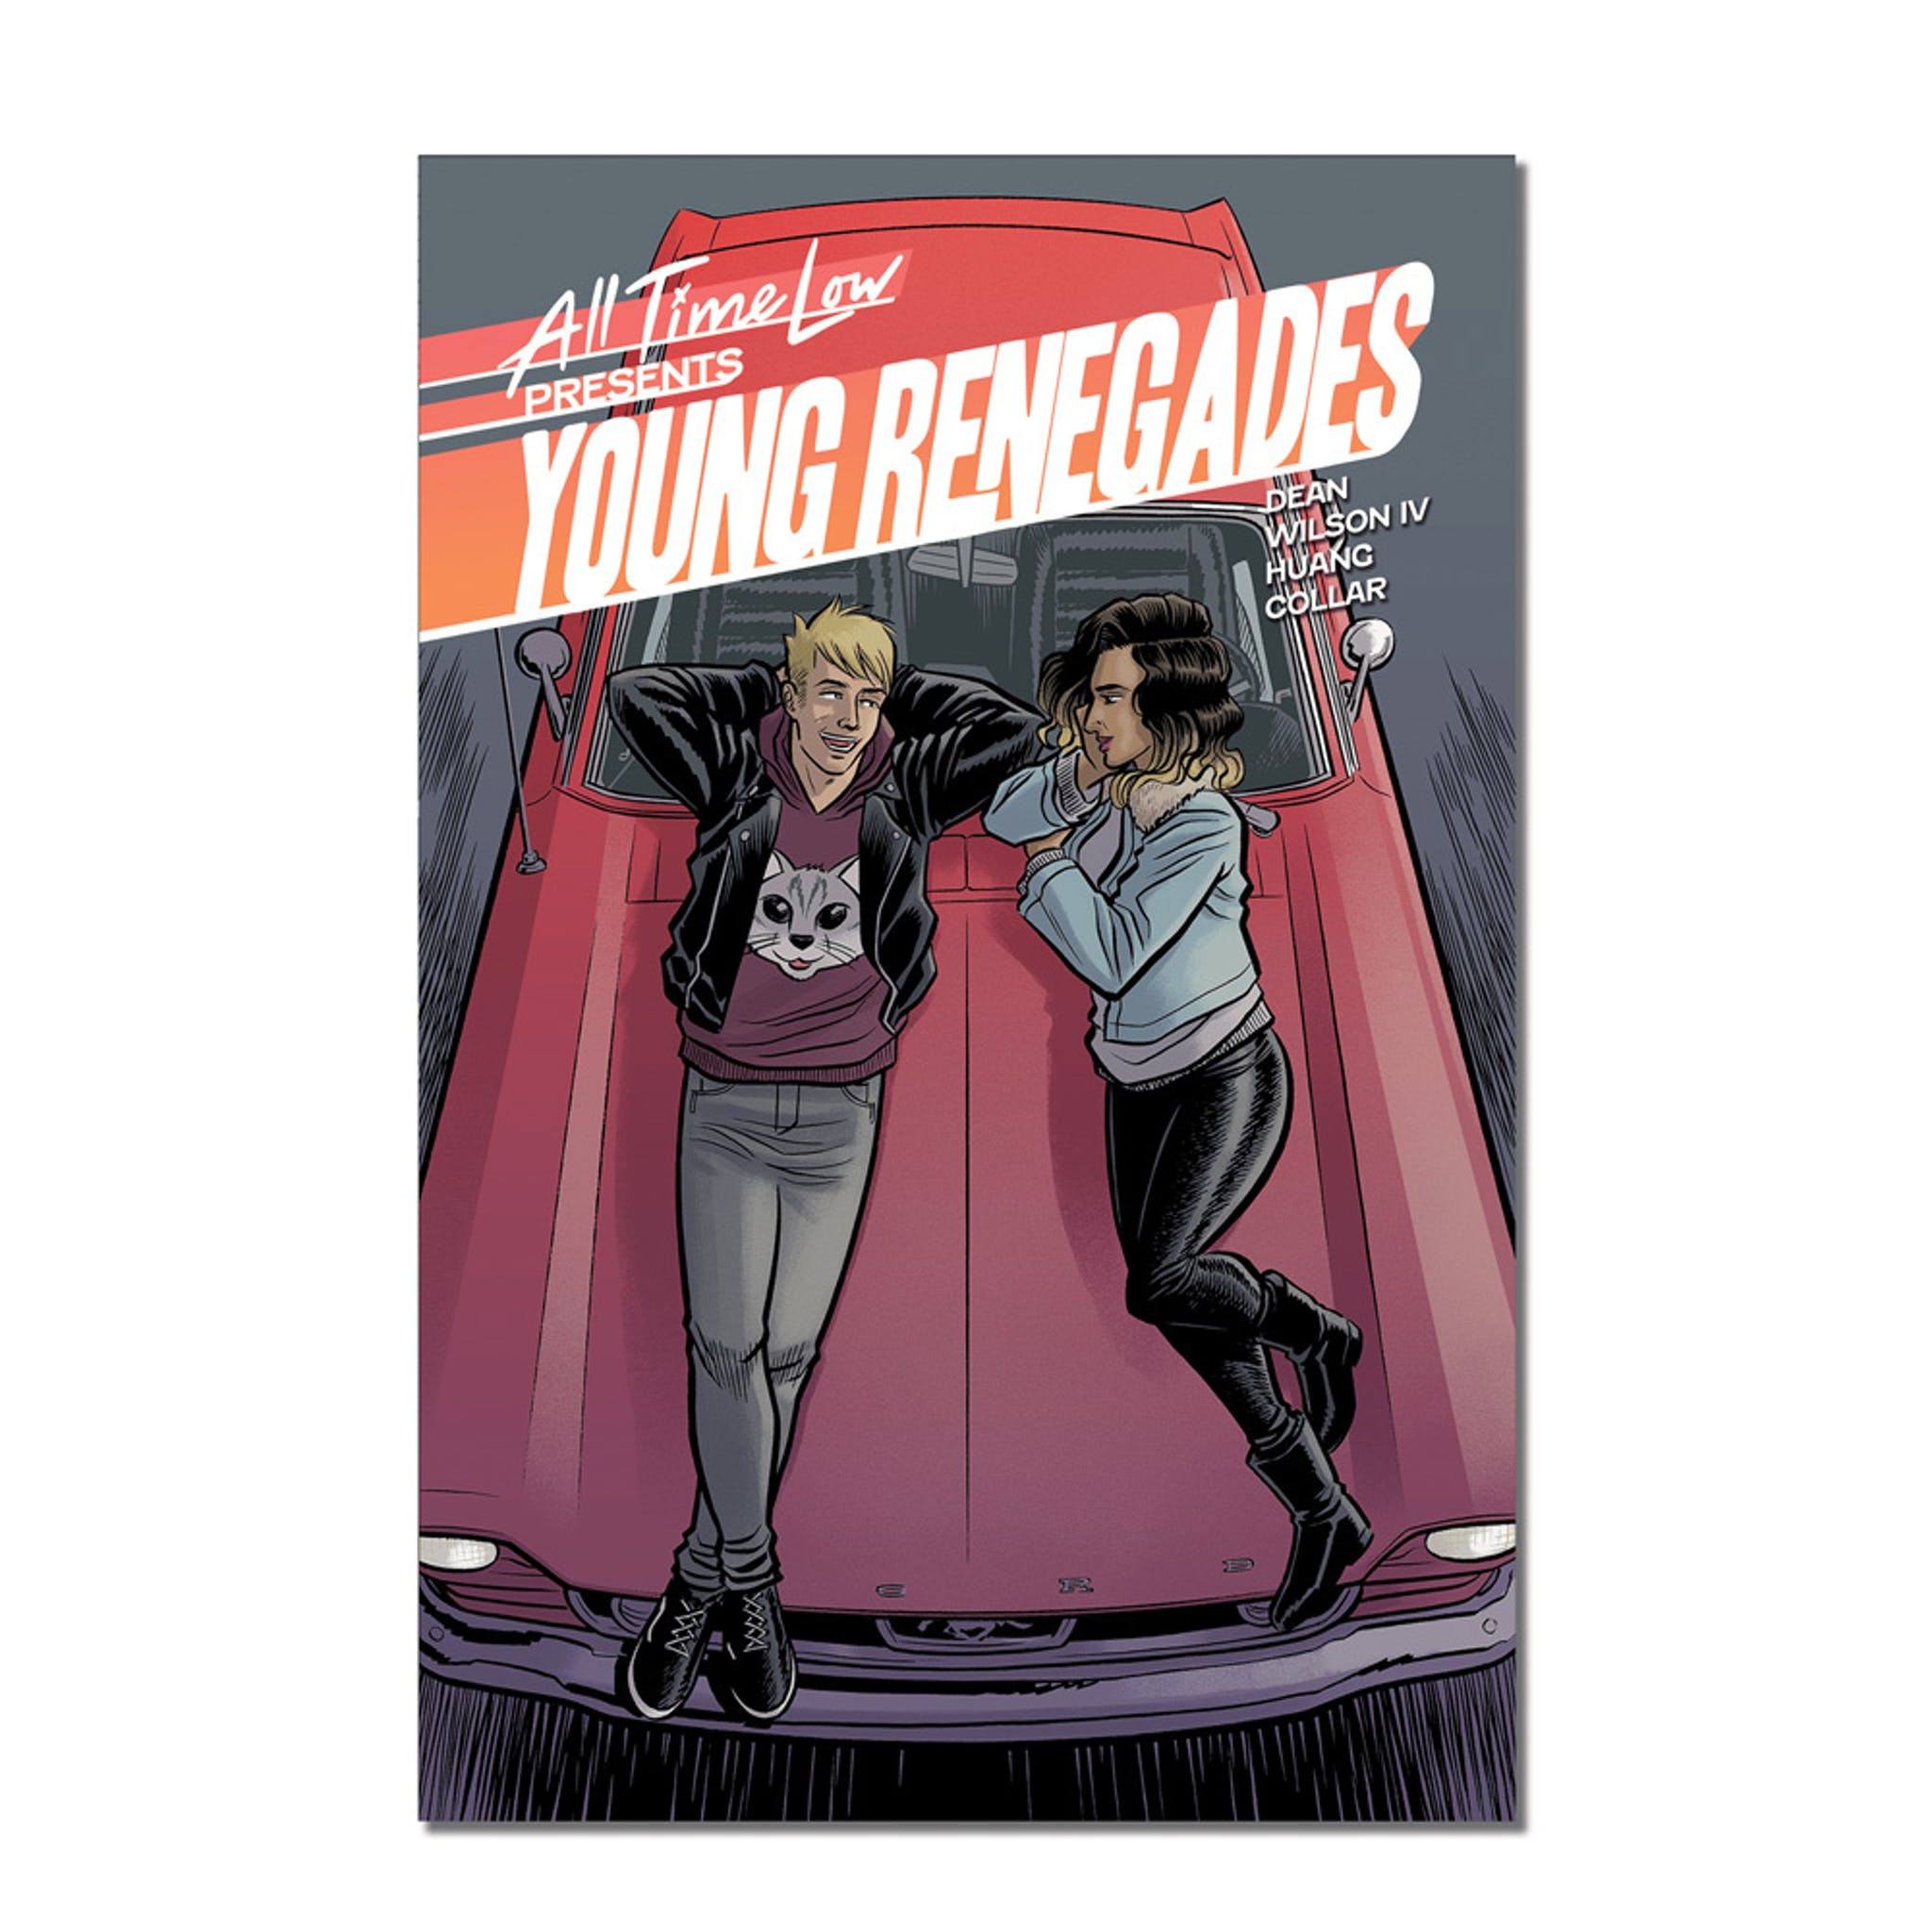 All Time Low Young Renegades graphic novel cover